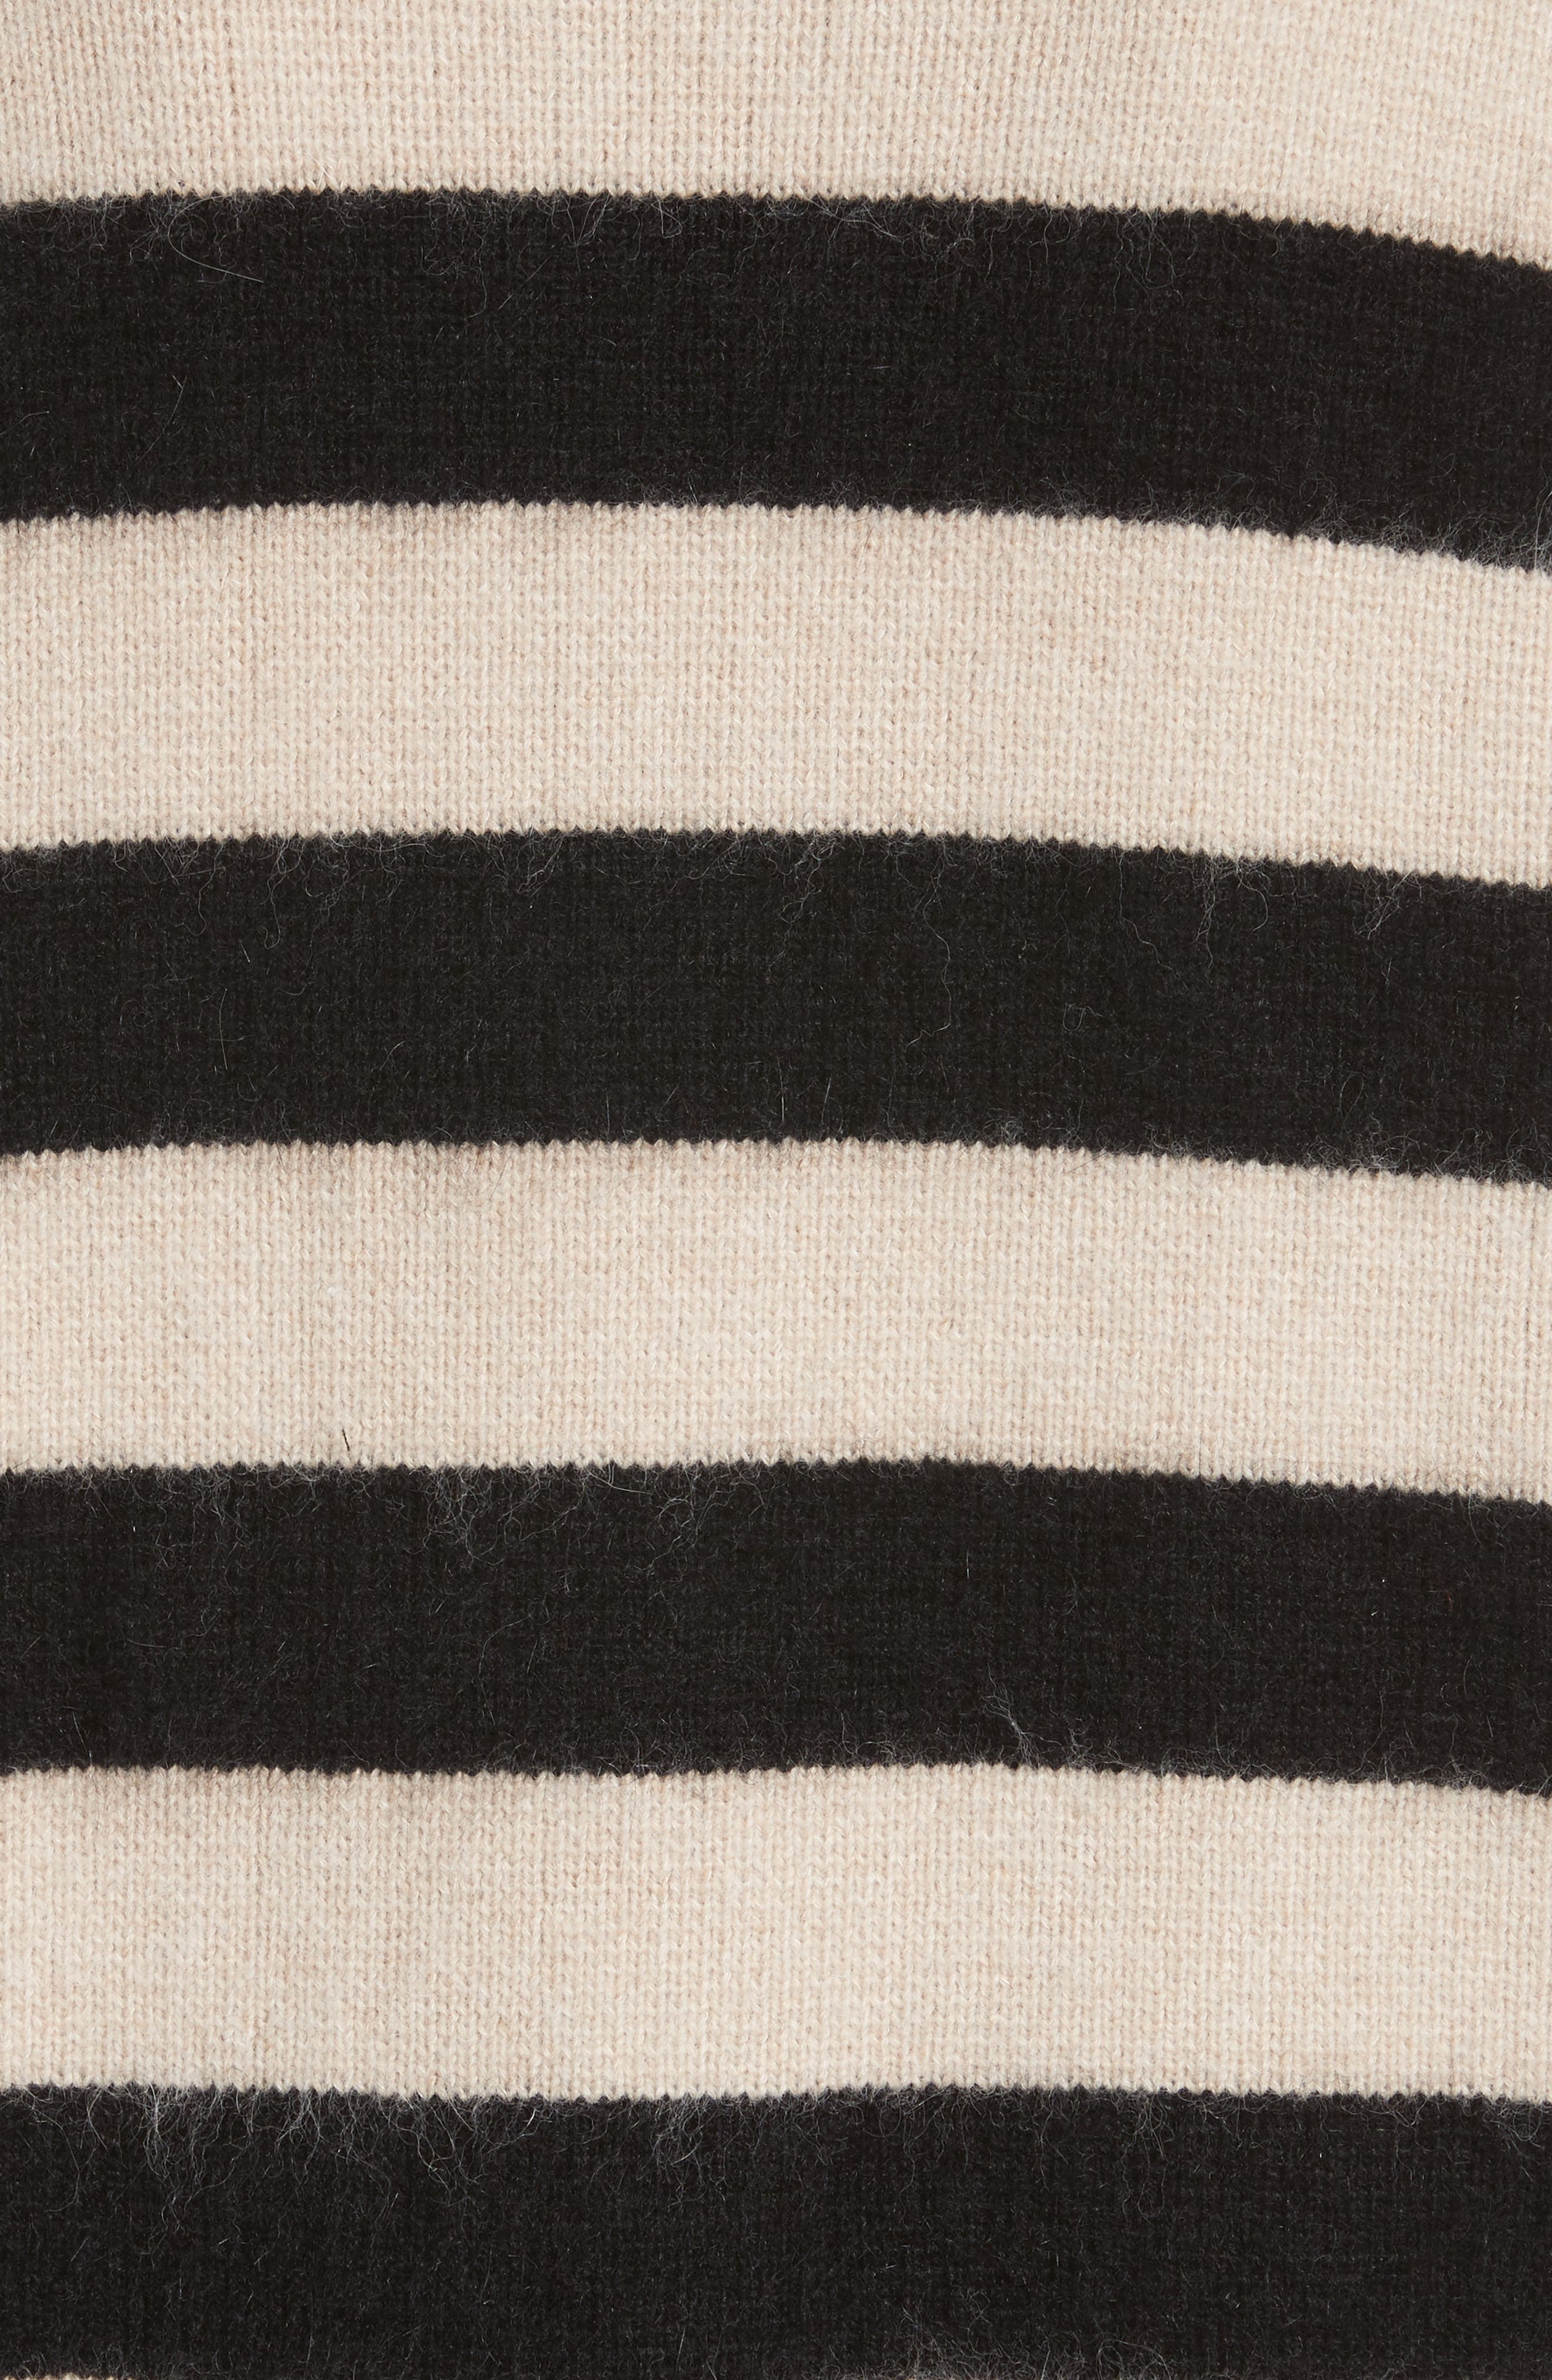 Stripe Oversize Cardigan,                             Alternate thumbnail 5, color,                             001